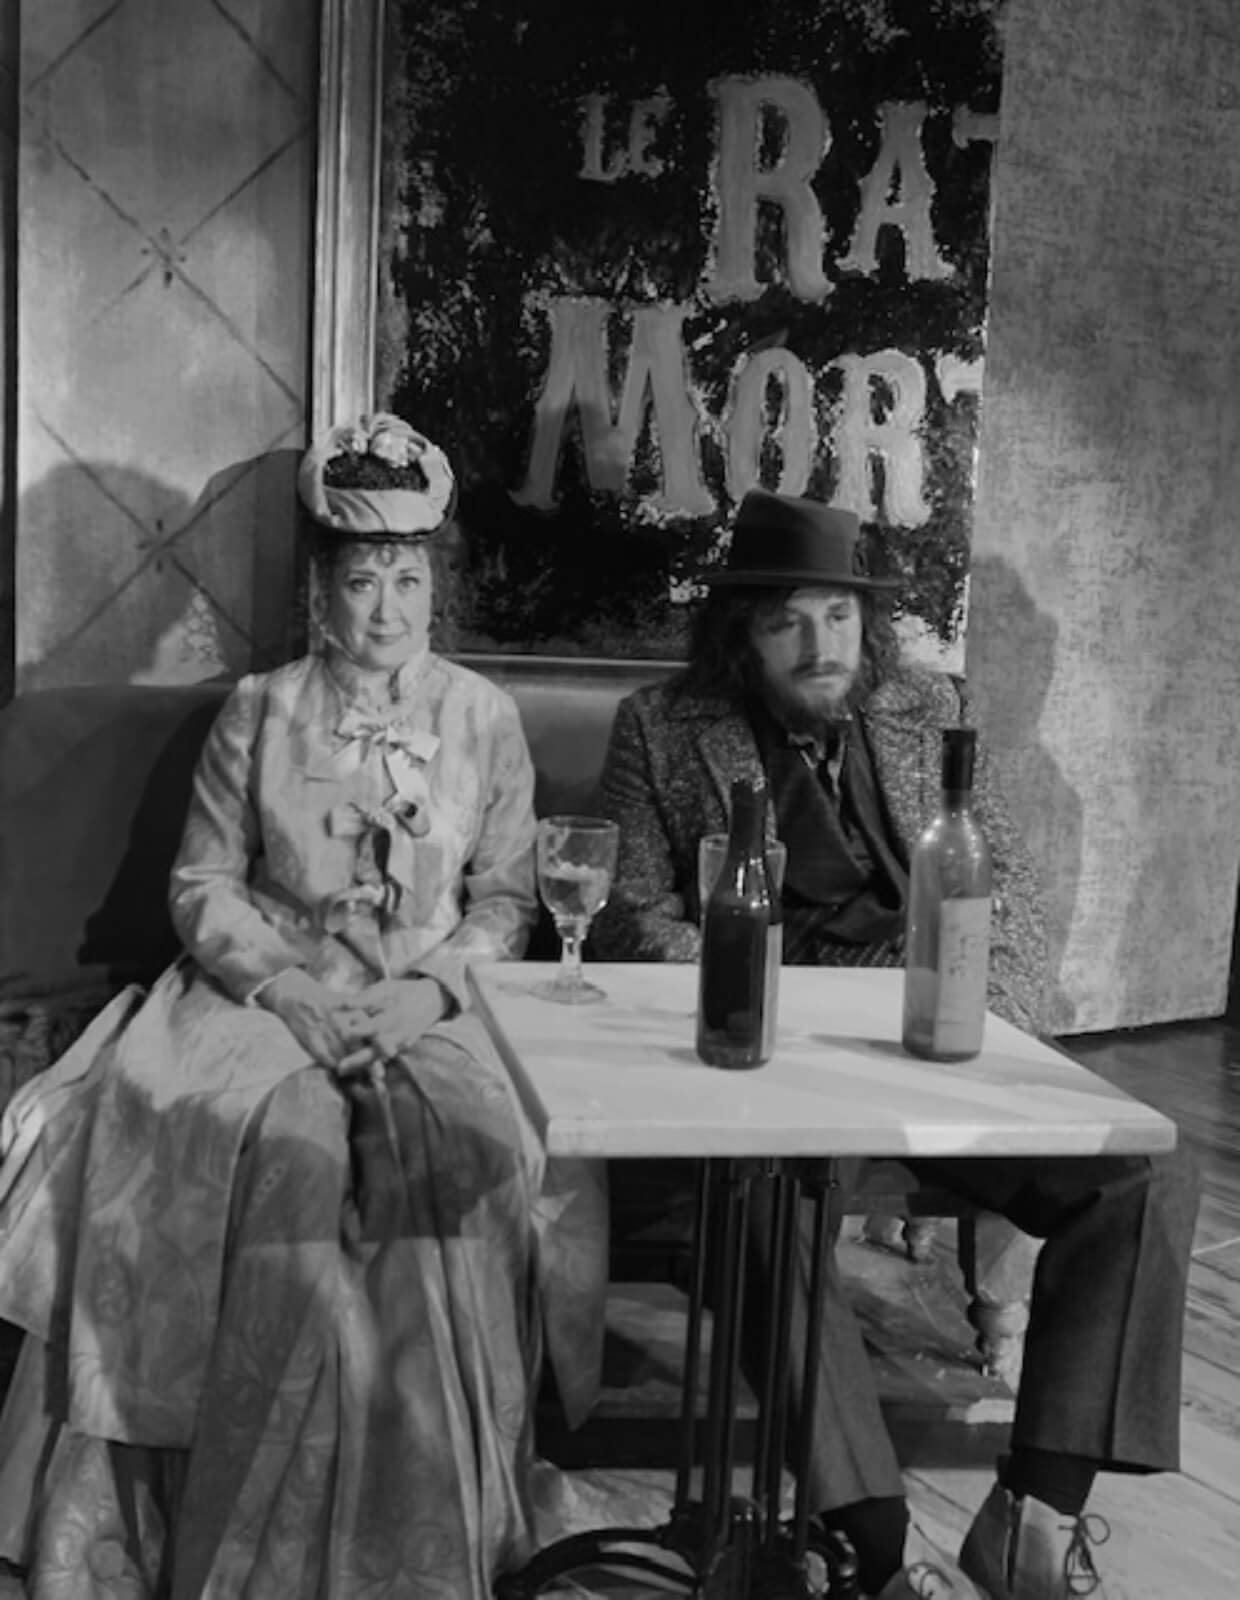 A black and white photo of Karen Ziemba and Jimmy Borstelmann in a bar. Karen is wearing a hat and a big dress, while Jimmy in a hat and a suit, is slouching and looks drunk. They are L'Absinthe drinkers.